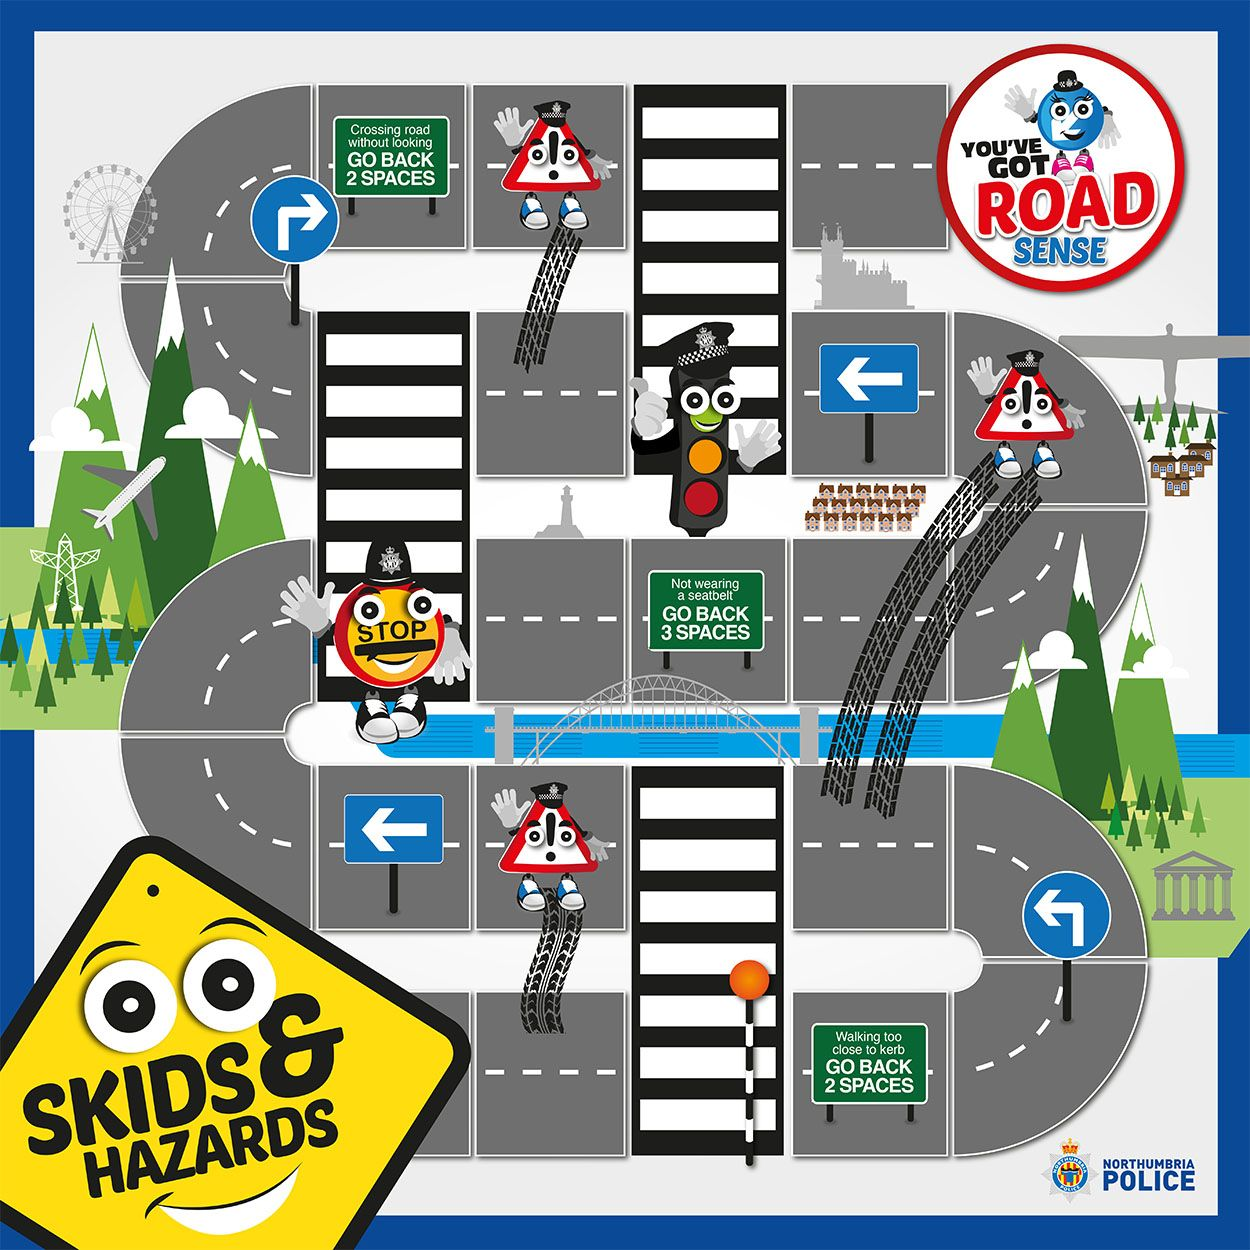 Road Safety Campaign Skids And Hazards Board